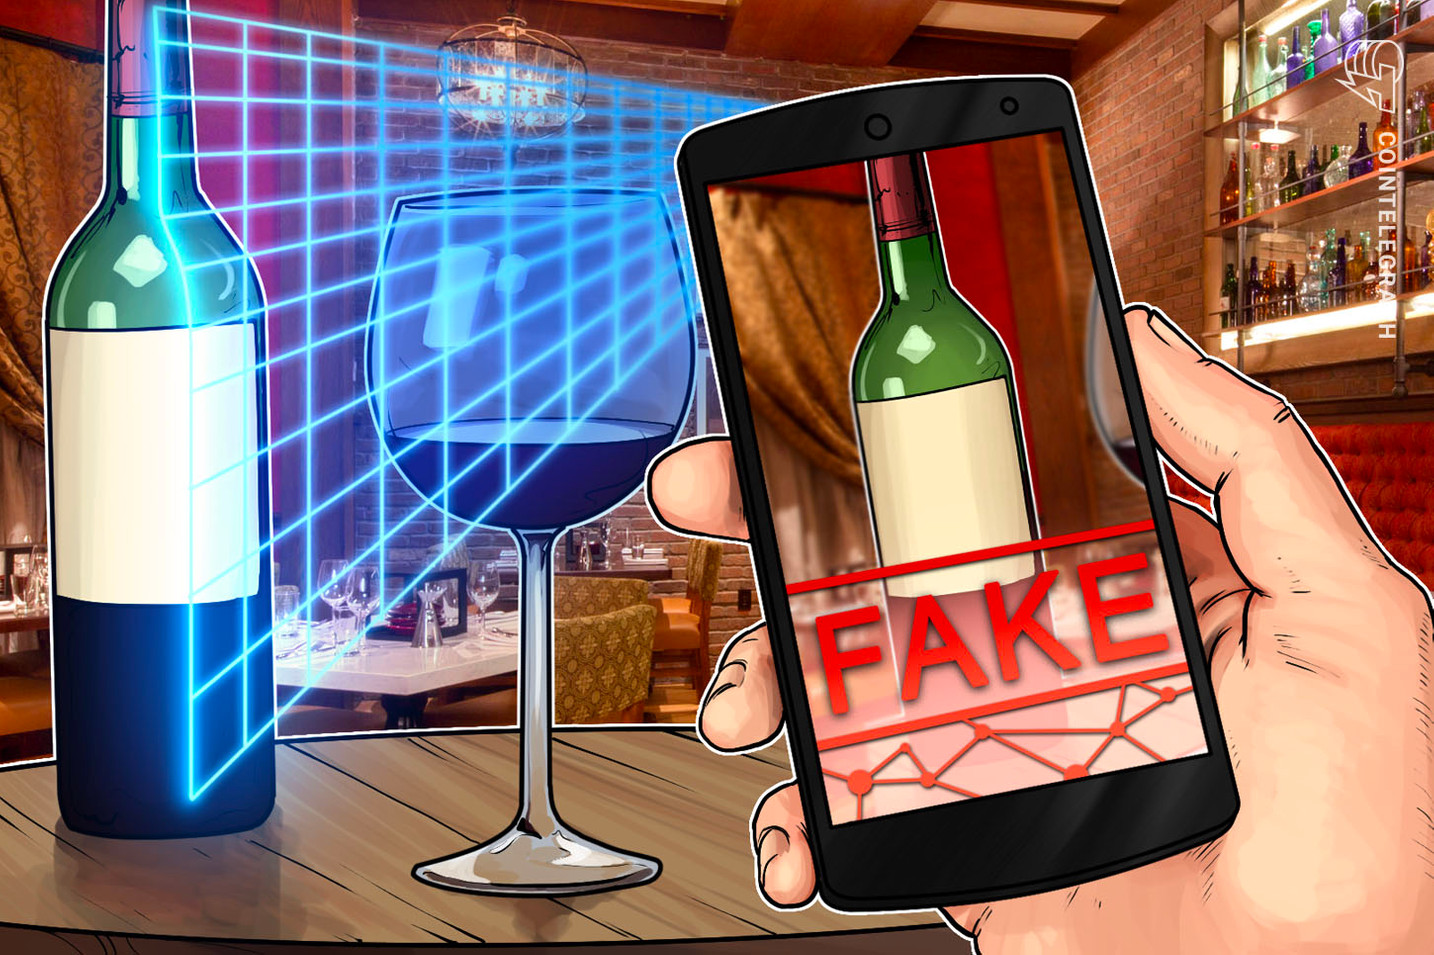 Chinese Alcohol Wholesaler Testing Anti-Counterfeiting Blockchain Solution